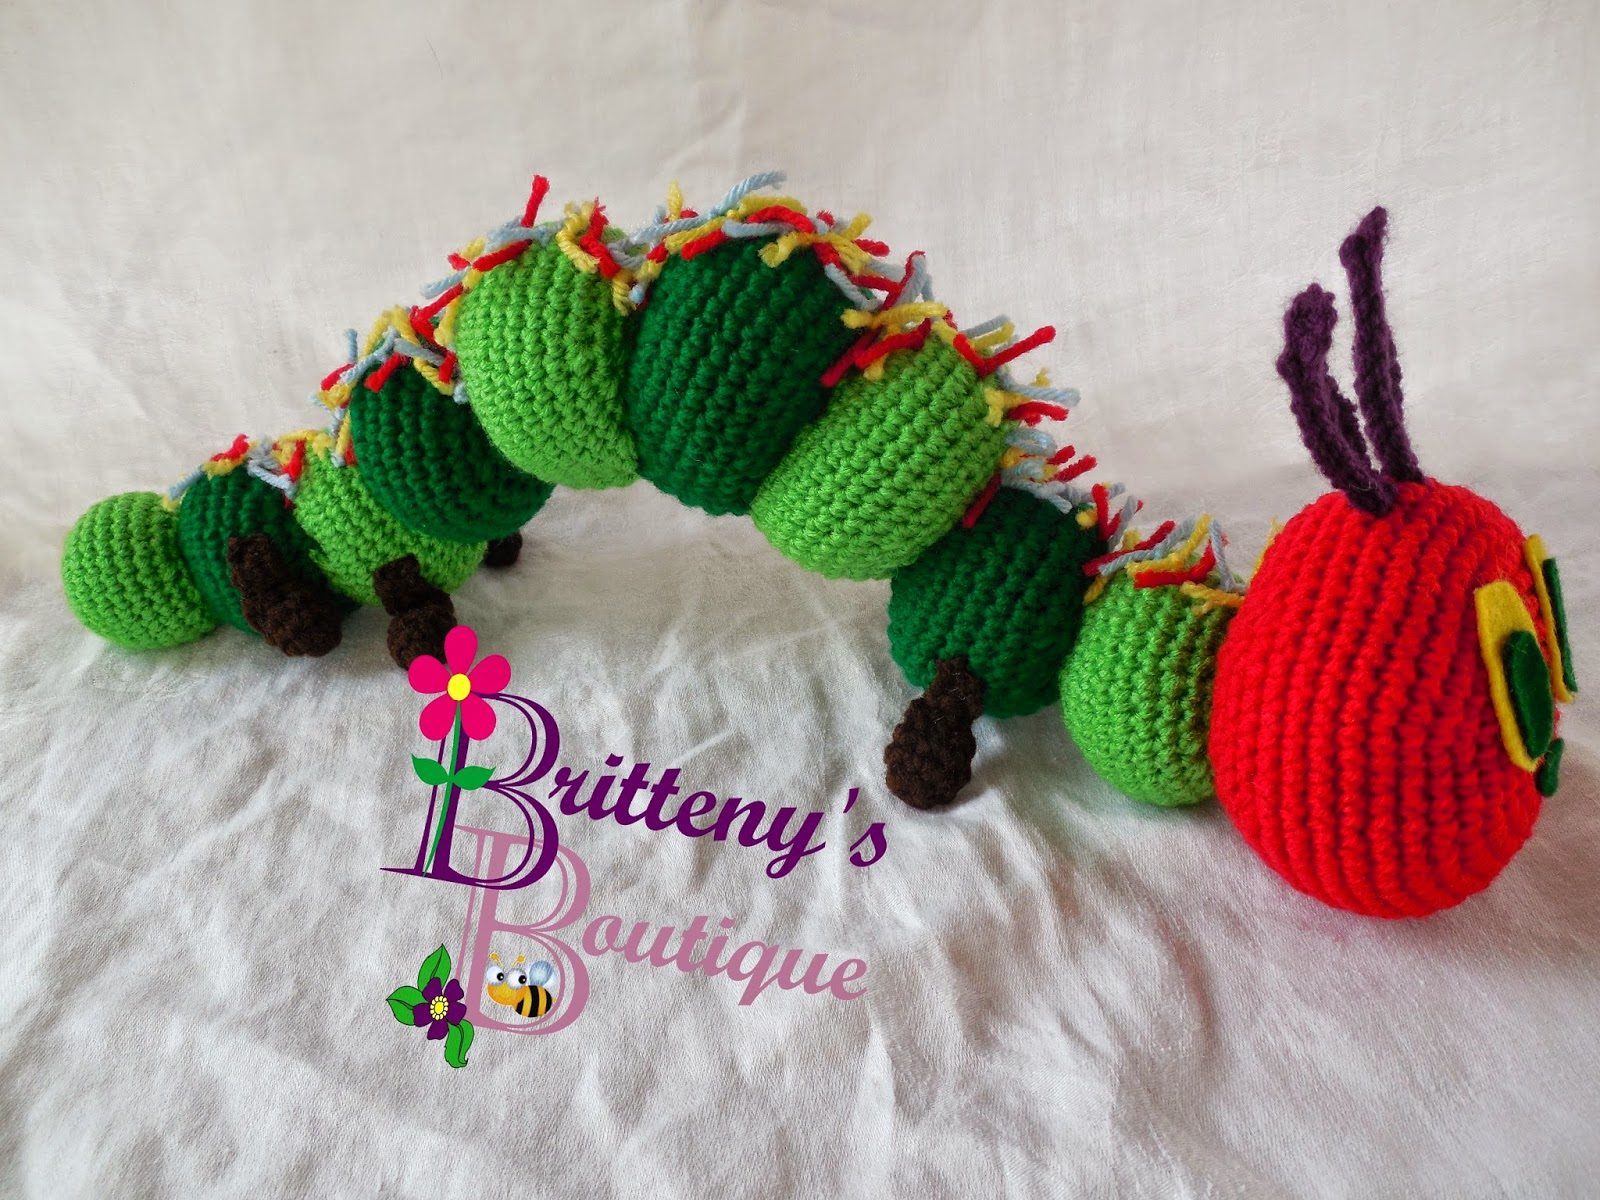 17b78afd8 Crochet Hungry Caterpillar Related Keywords & Suggestions - Crochet ...